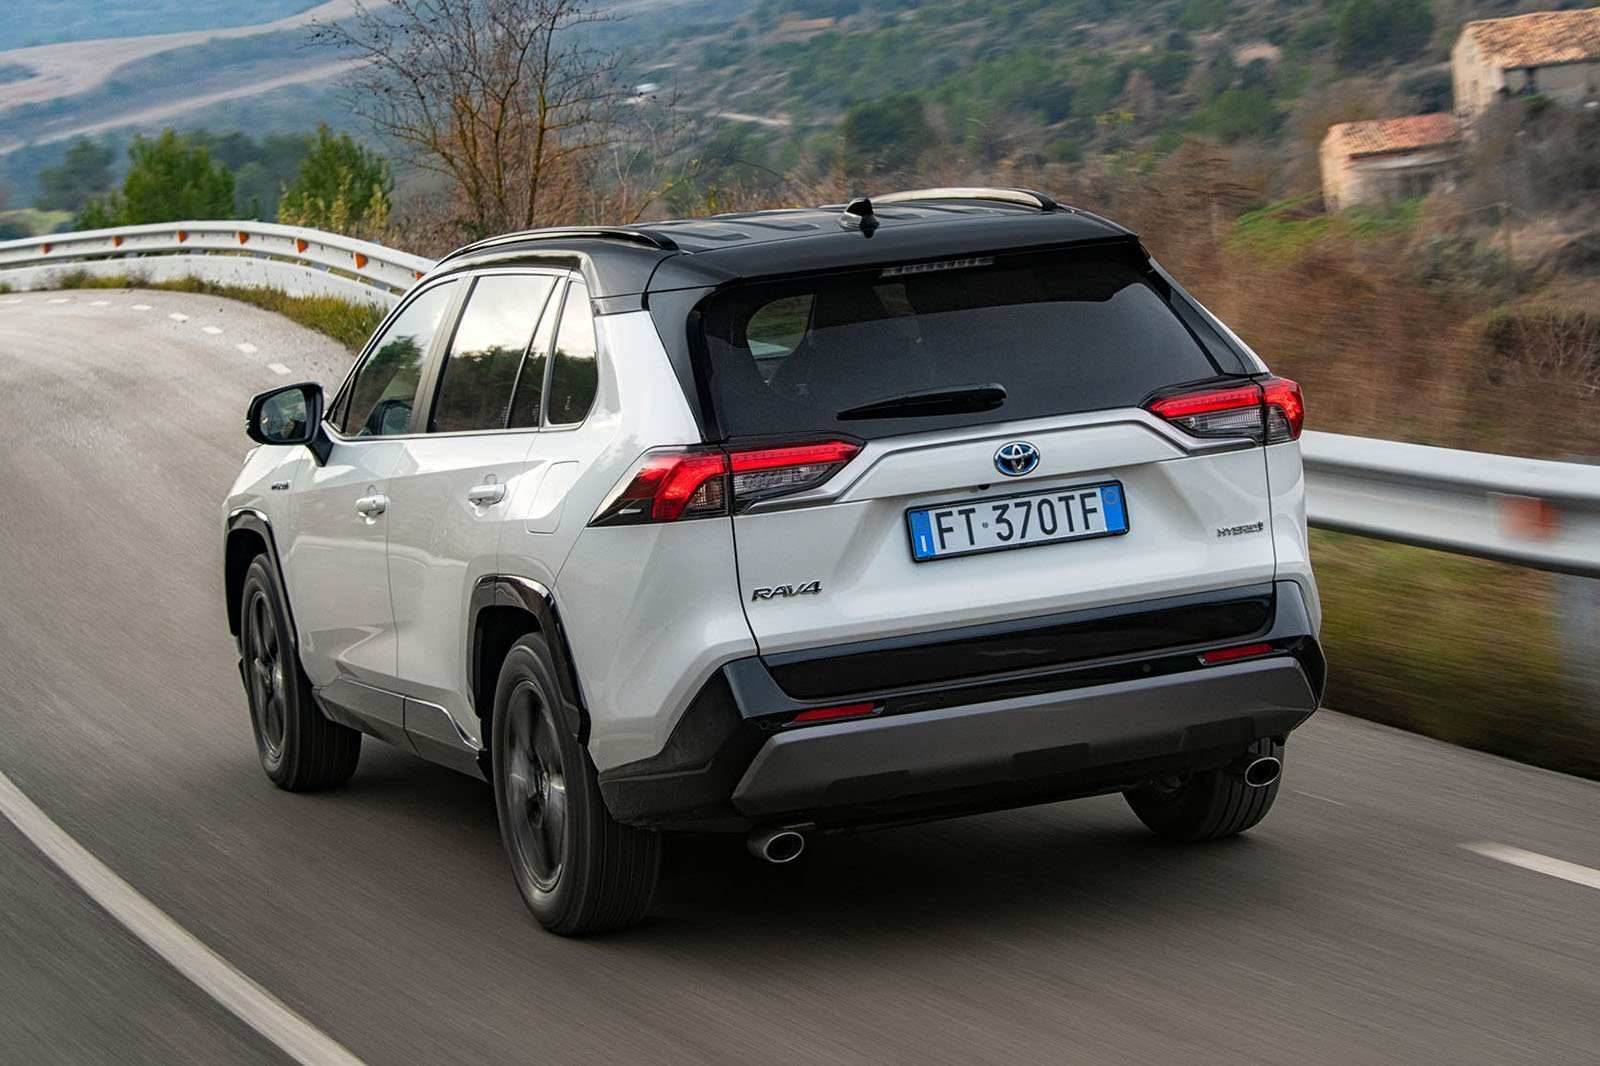 41 Great 2019 Toyota Rav4 Specs Picture Release Date And Review Pricing for 2019 Toyota Rav4 Specs Picture Release Date And Review